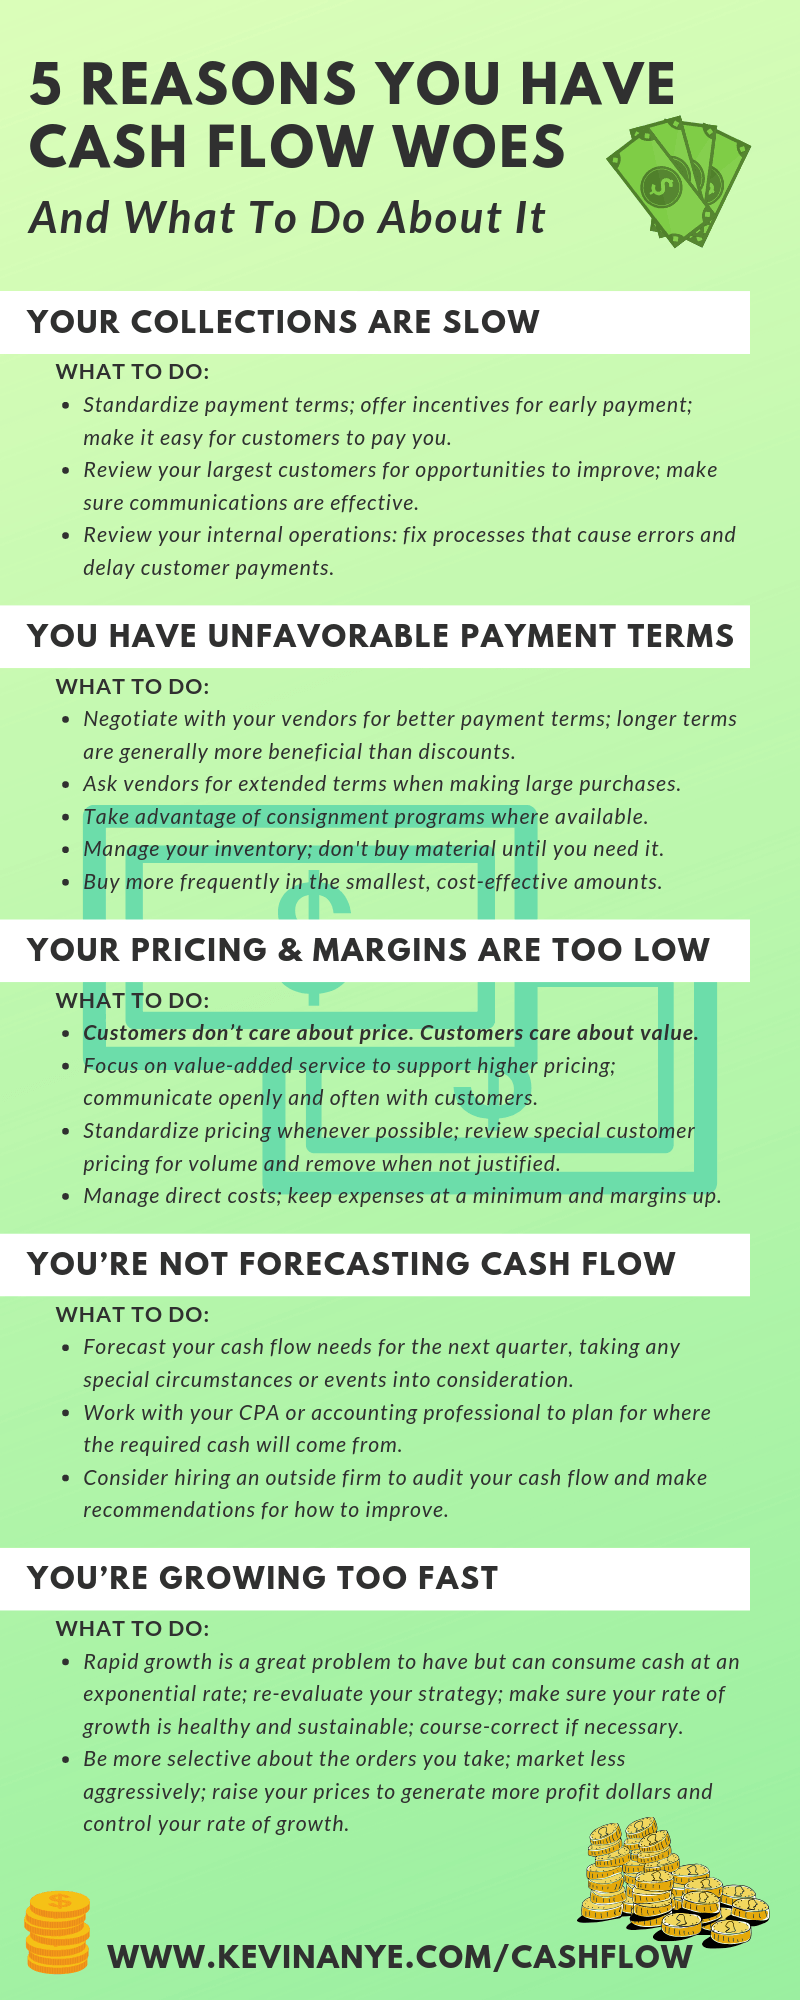 5 Reasons You Have Cash Flow Woes and What To Do About It